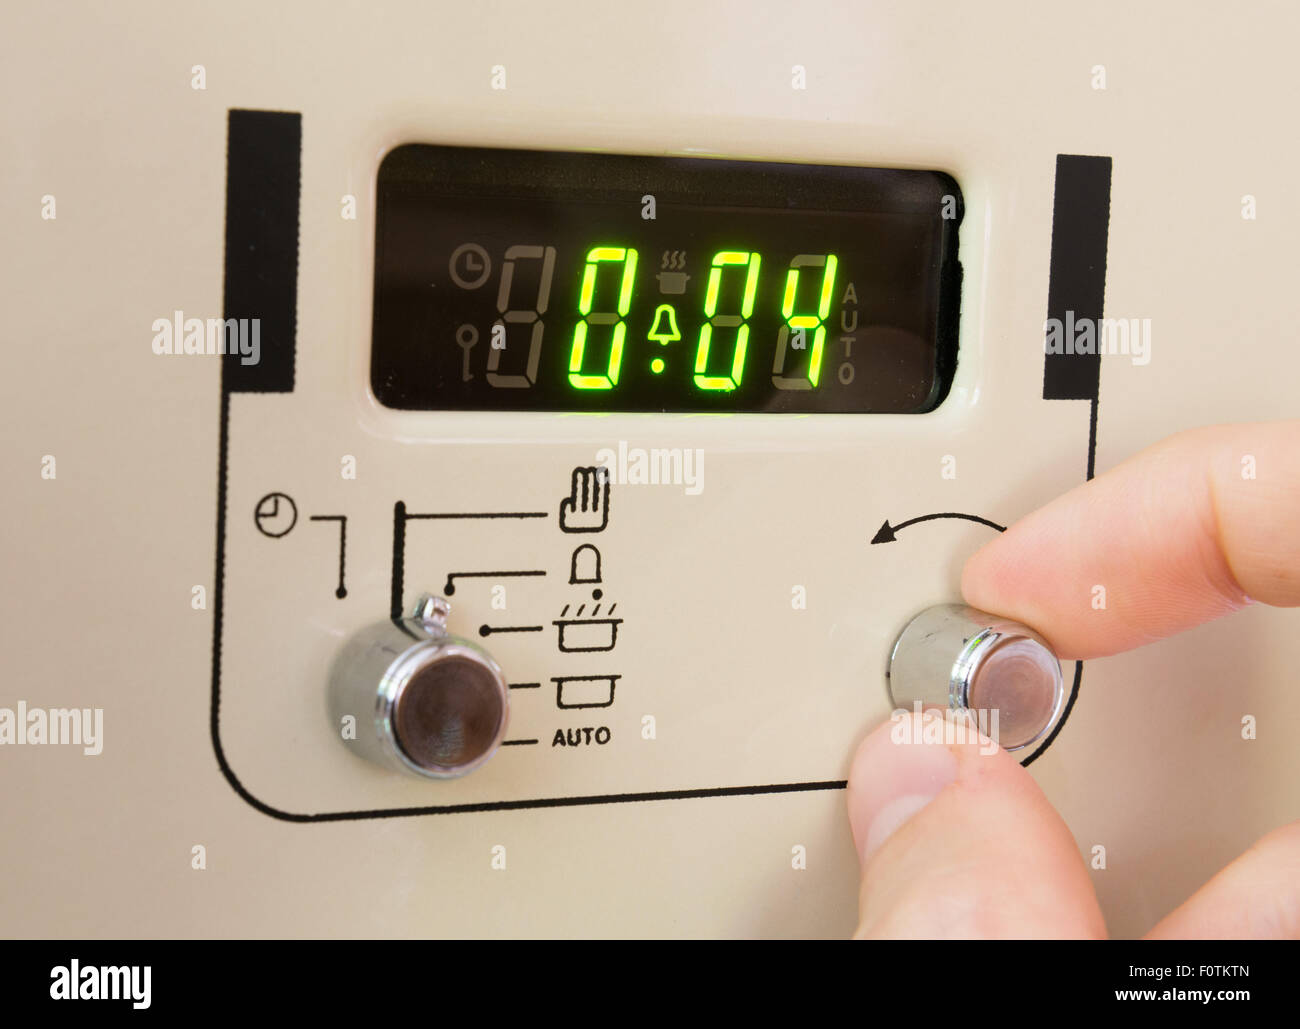 Setting a cooker timer to 4 minutes - Stock Image